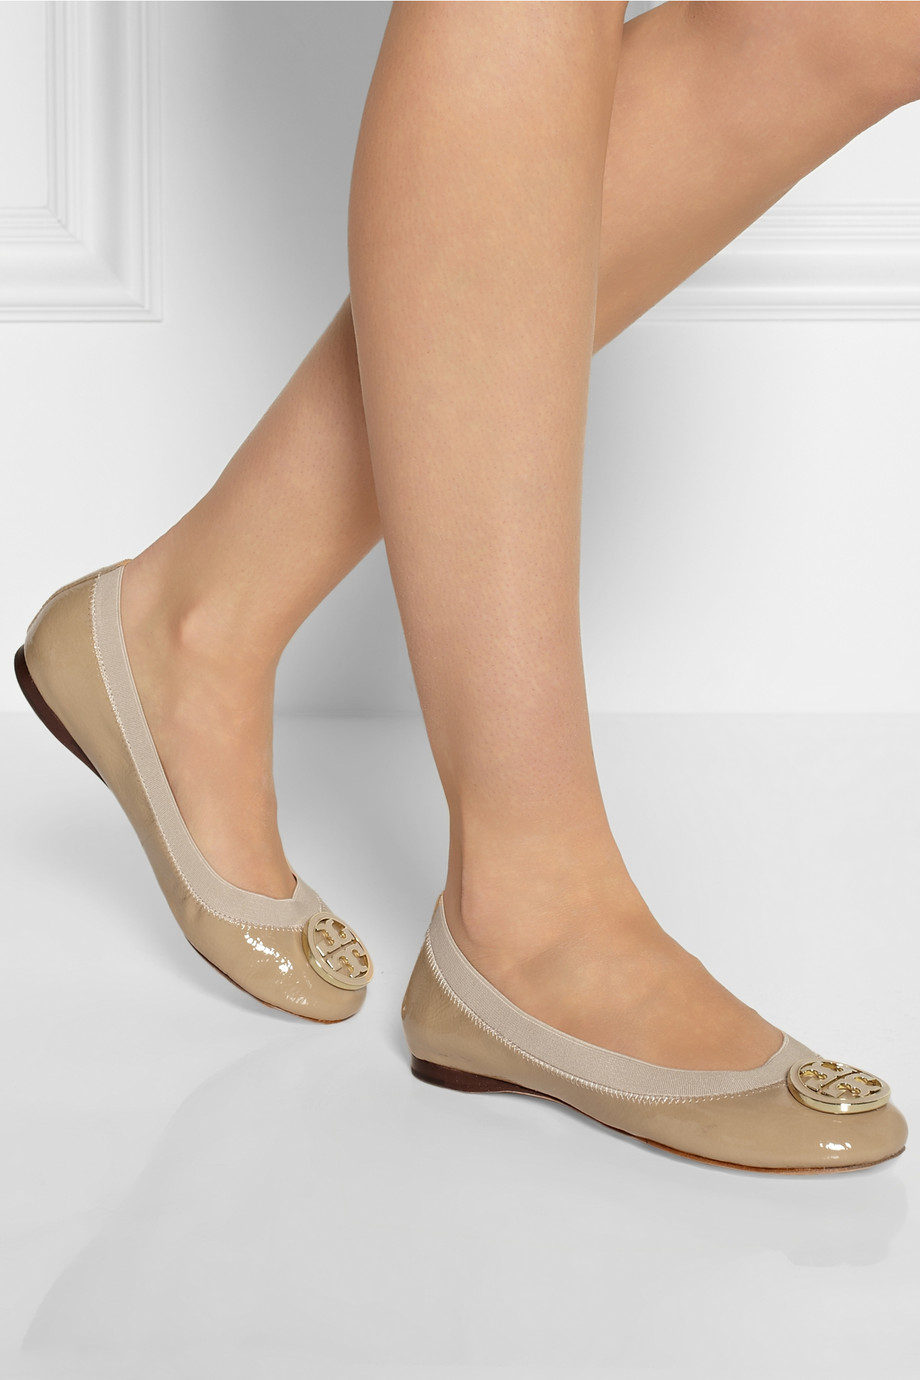 Tory Burch Caroline Patentleather Ballet Flats In Natural